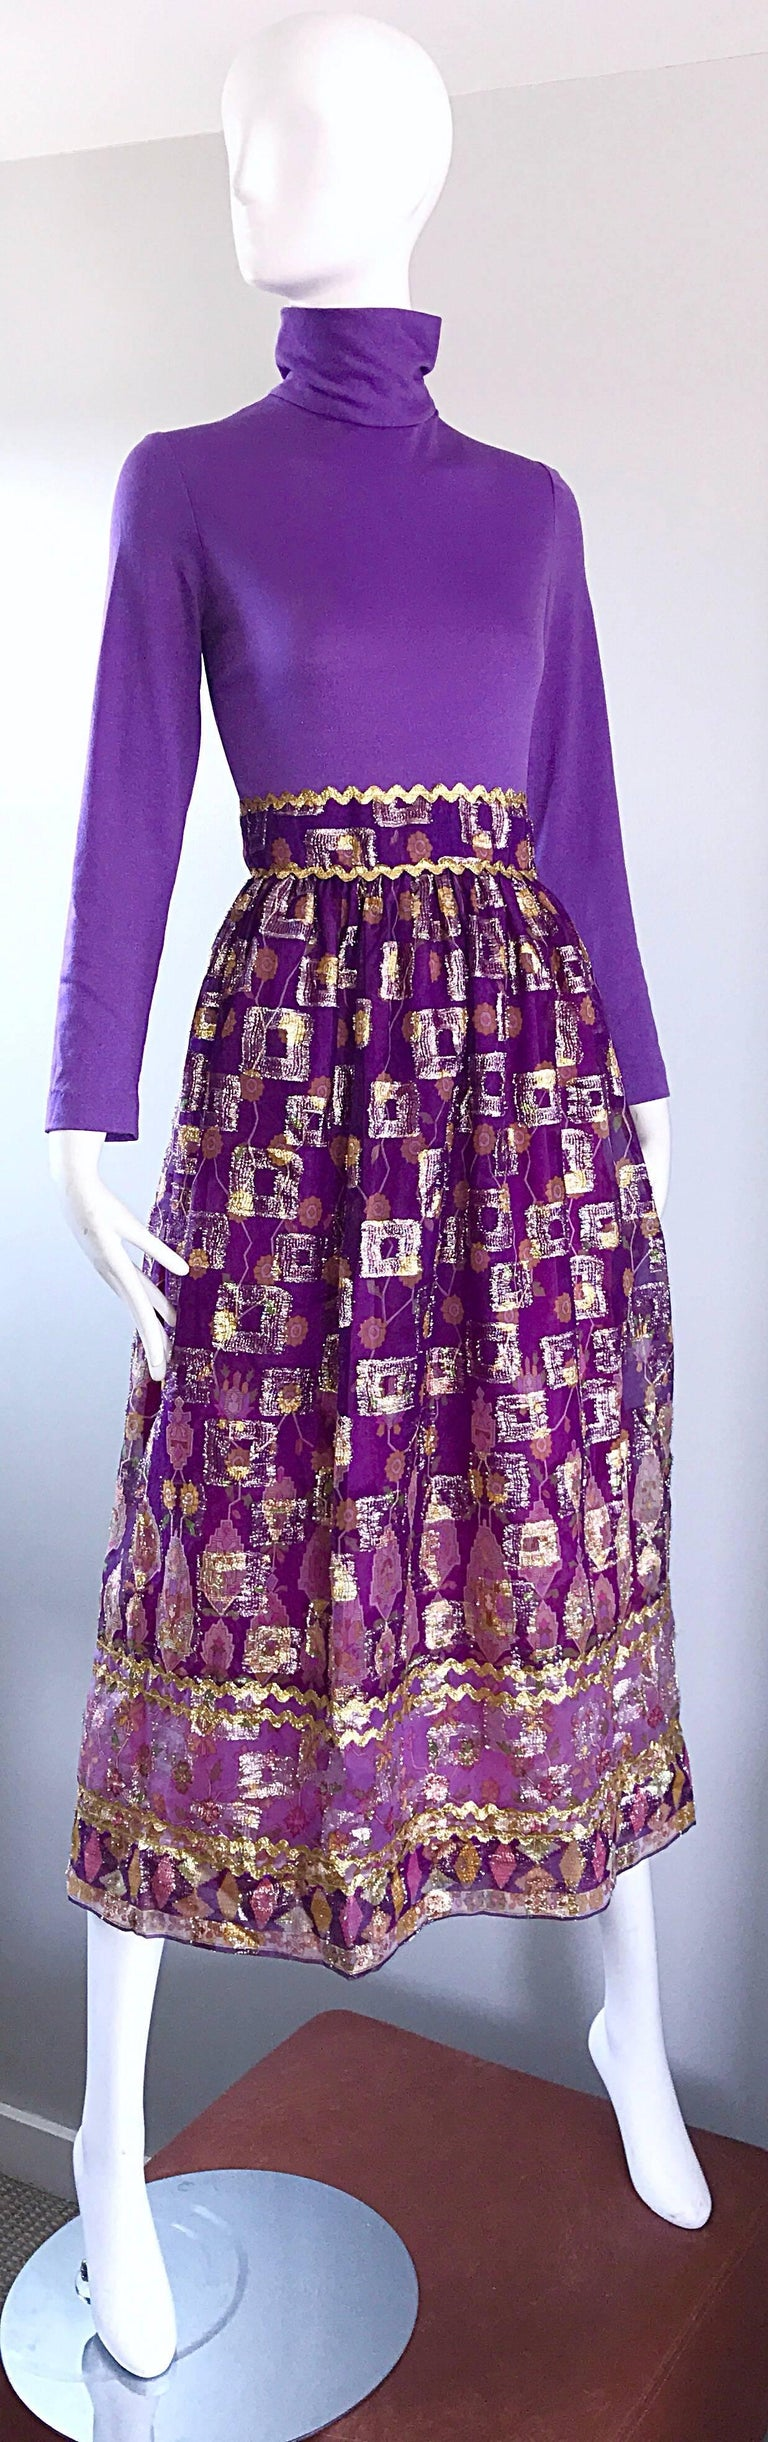 Beautiful 1970s Purple Lavender Ethnic Batik Print High Neck Vintage Midi Dress For Sale 1